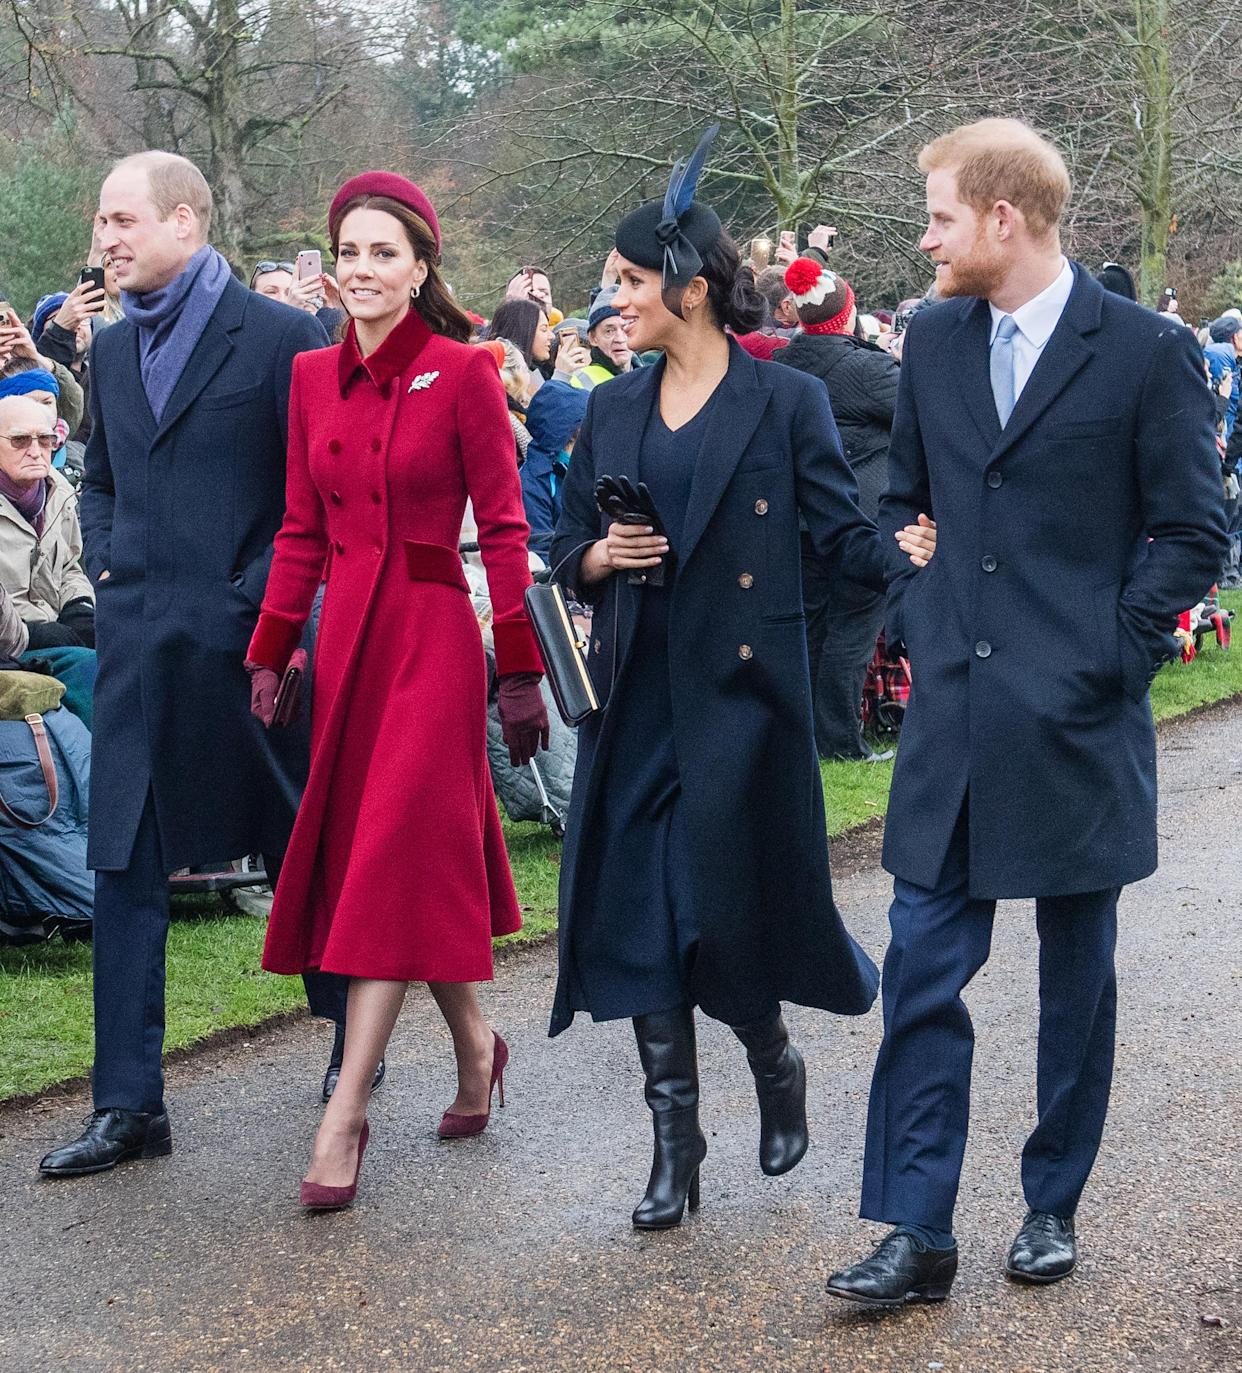 KING'S LYNN, ENGLAND - DECEMBER 25: Prince William, Duke of Cambridge, Catherine, Duchess of Cambridge, Meghan, Duchess of Sussex and Prince Harry, Duke of Sussex attend Christmas Day Church service at Church of St Mary Magdalene on the Sandringham estate on December 25, 2018 in King's Lynn, England. (Photo by Samir Hussein/Samir Hussein/WireImage)